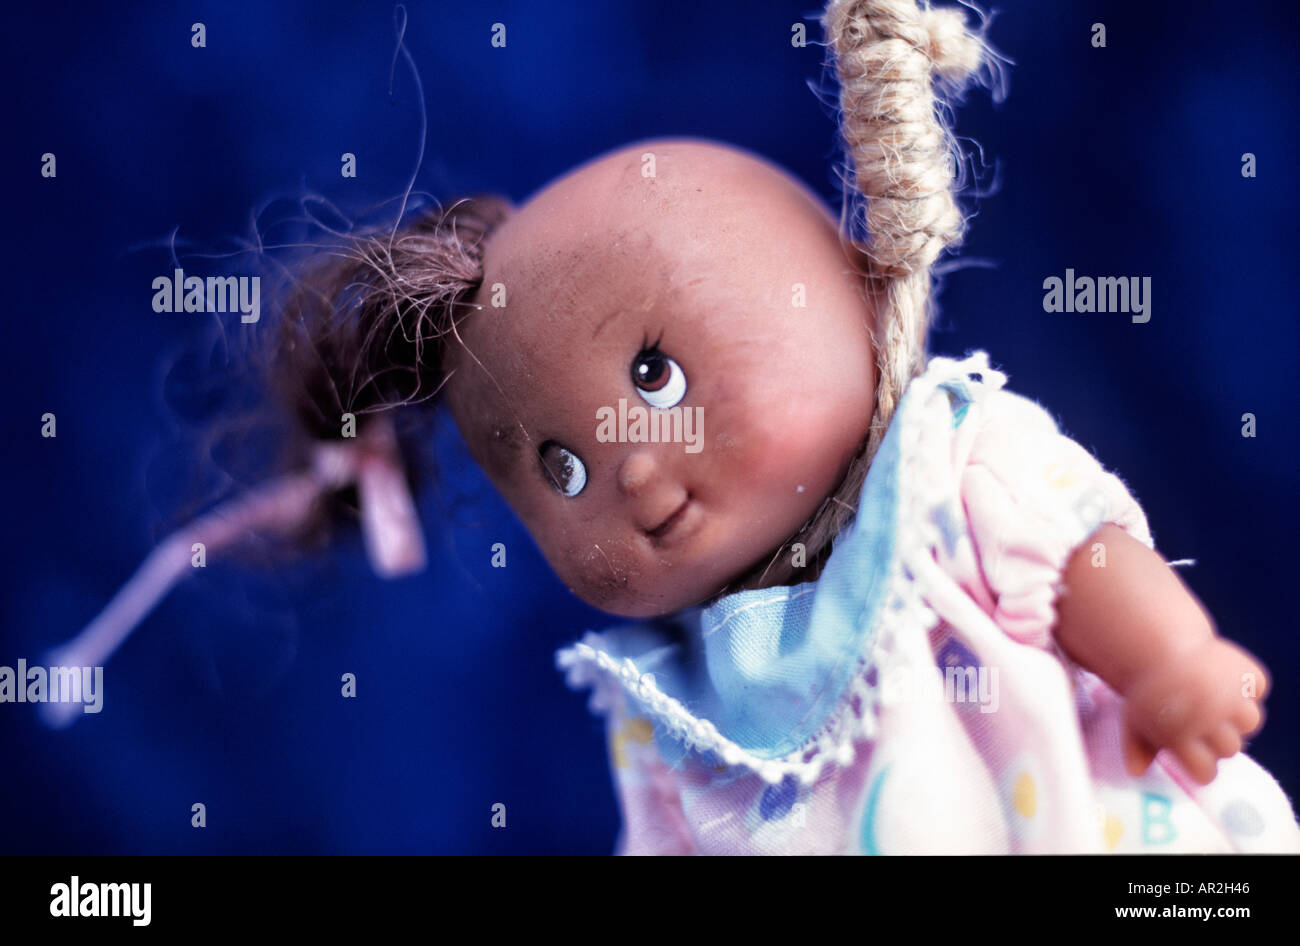 Scuffed, black doll in noose. Hate crime. - Stock Image